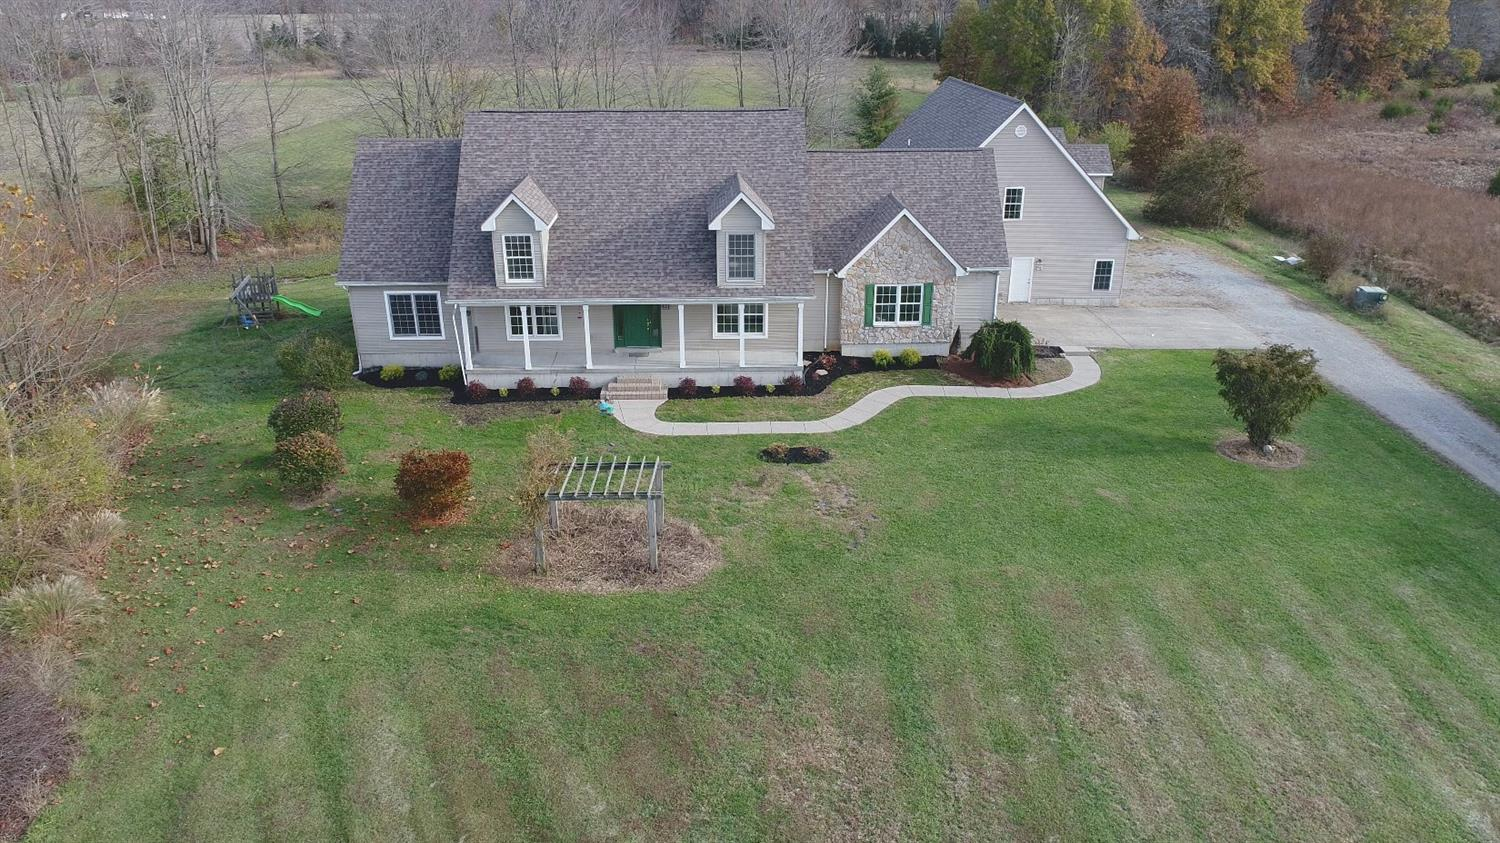 6052 Roudebush Rd Wayne Twp. (Clermont Co.), OH